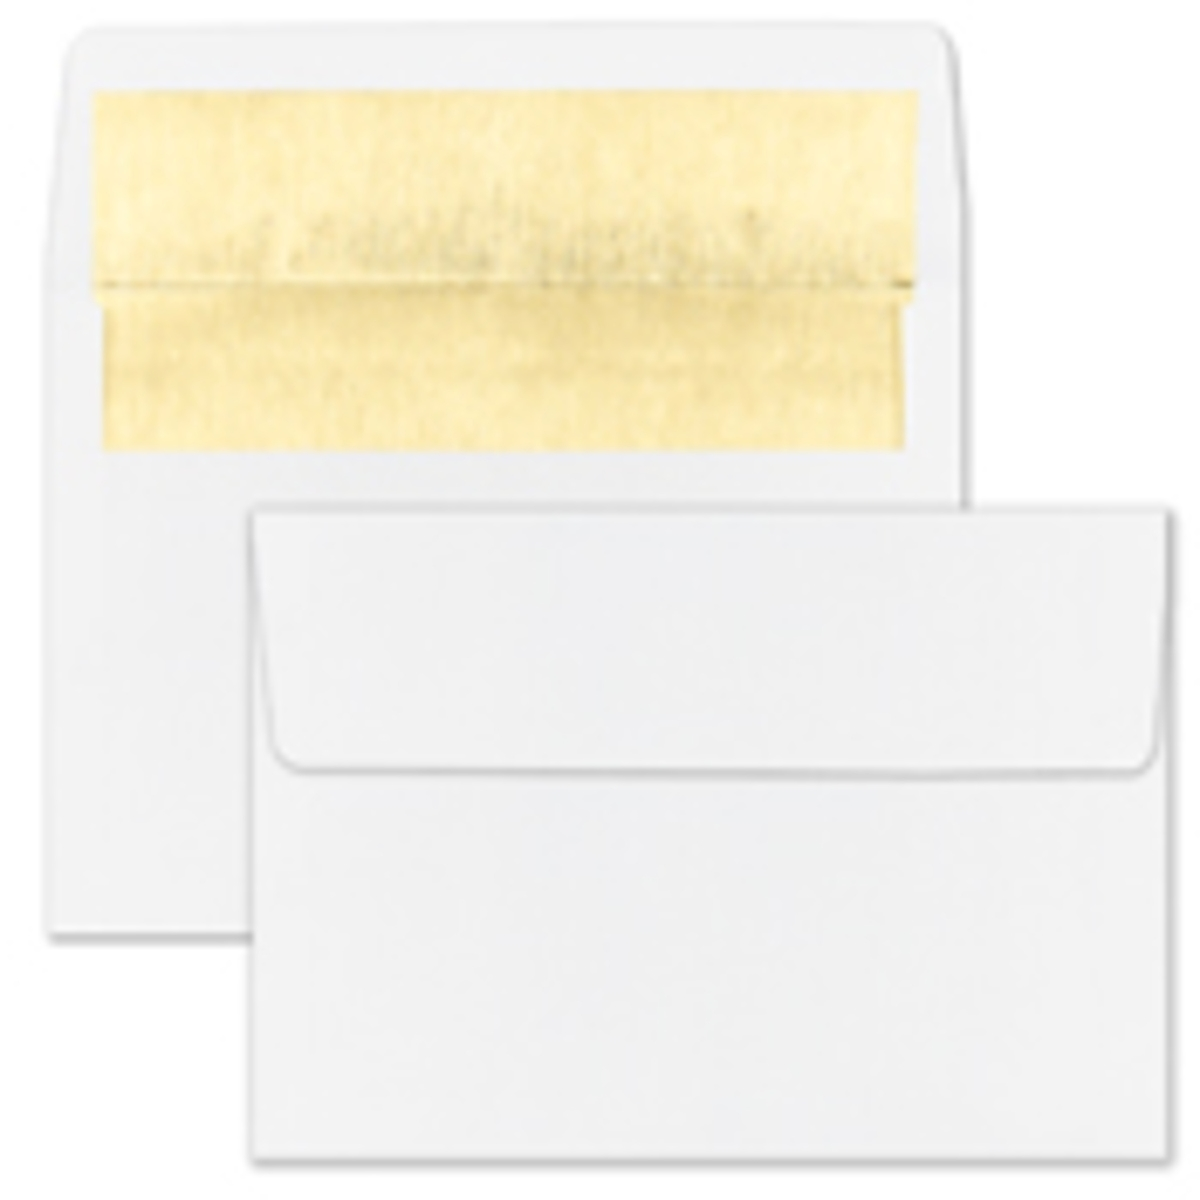 Recycled Shiny Gold Foil Lined White Envelope - Blank